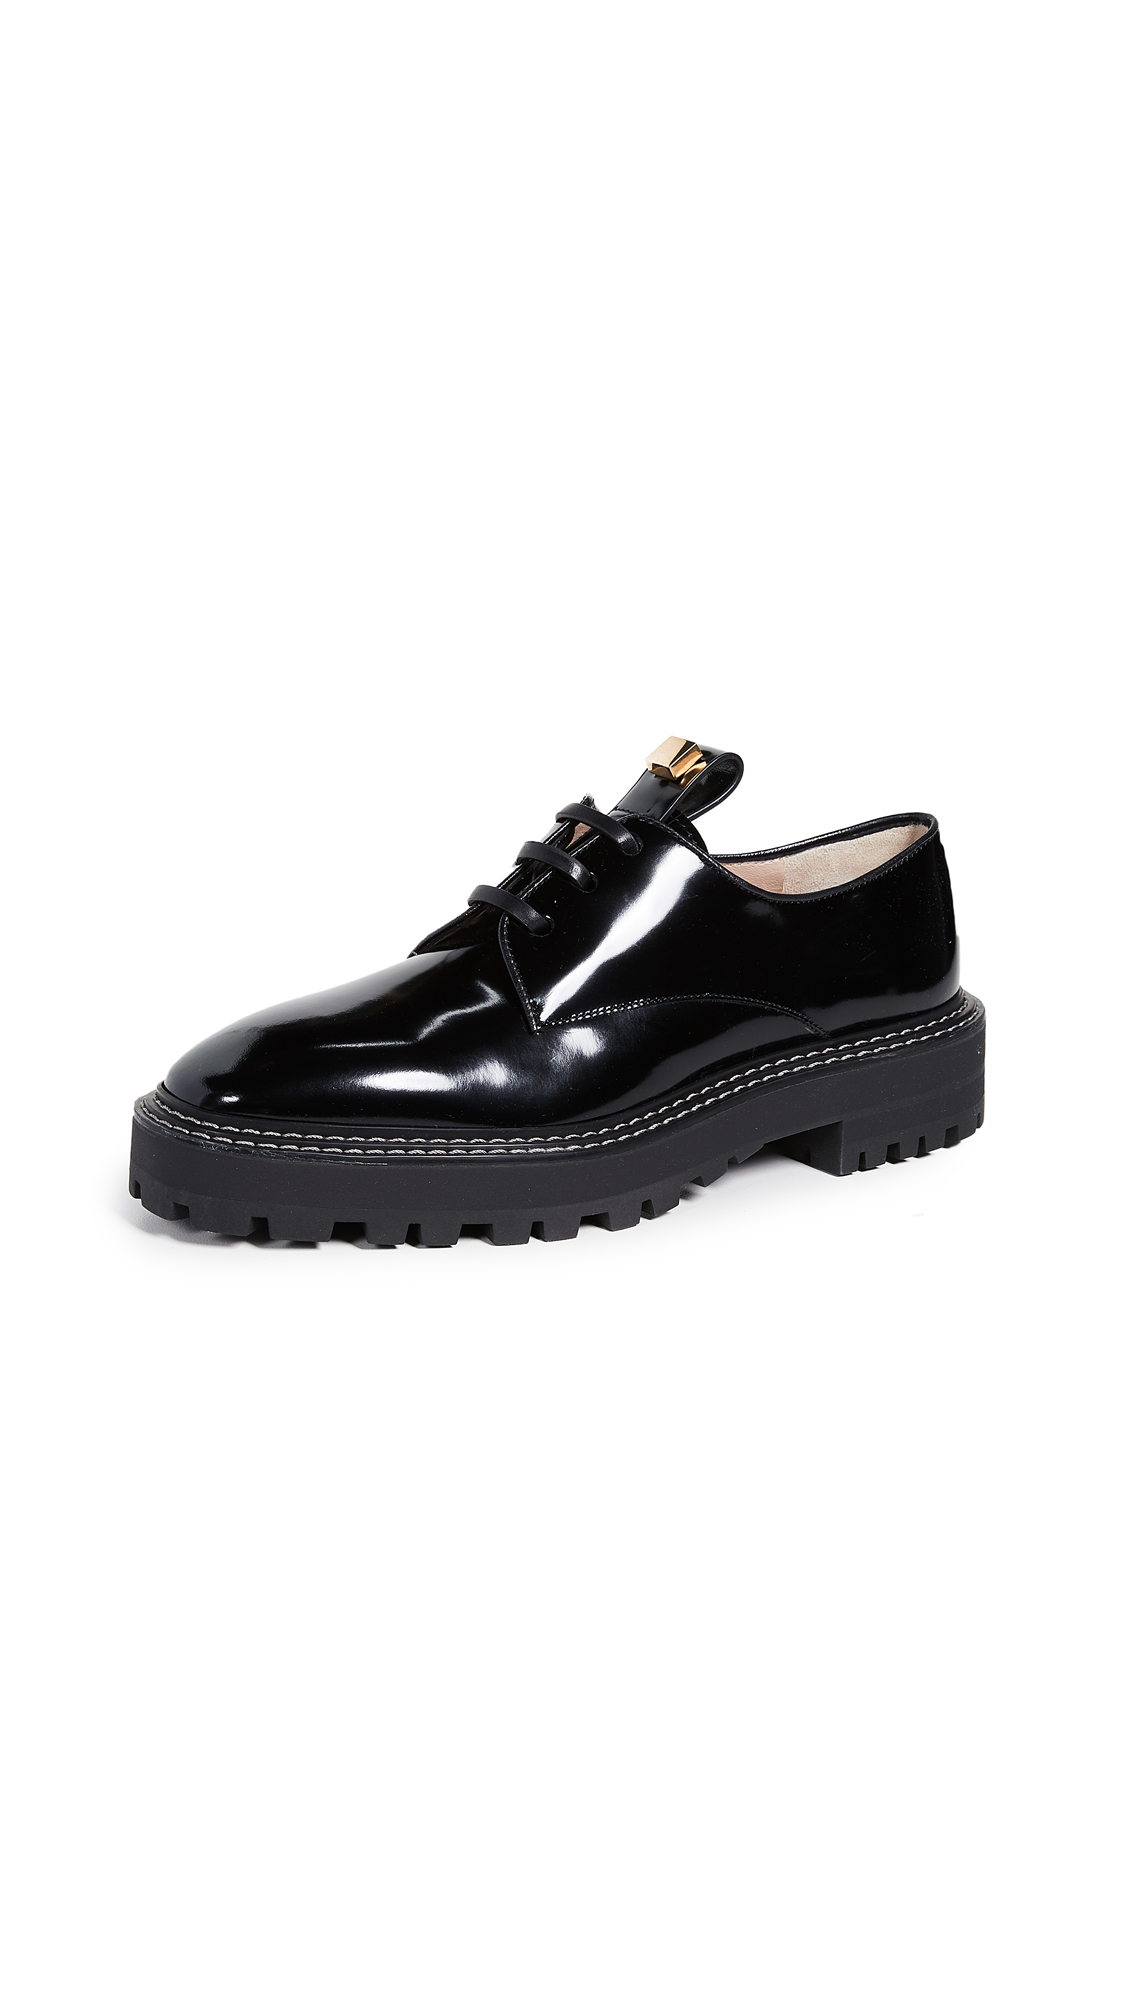 Stuart Weitzman Jesper Oxford Shoes - Pitch Black